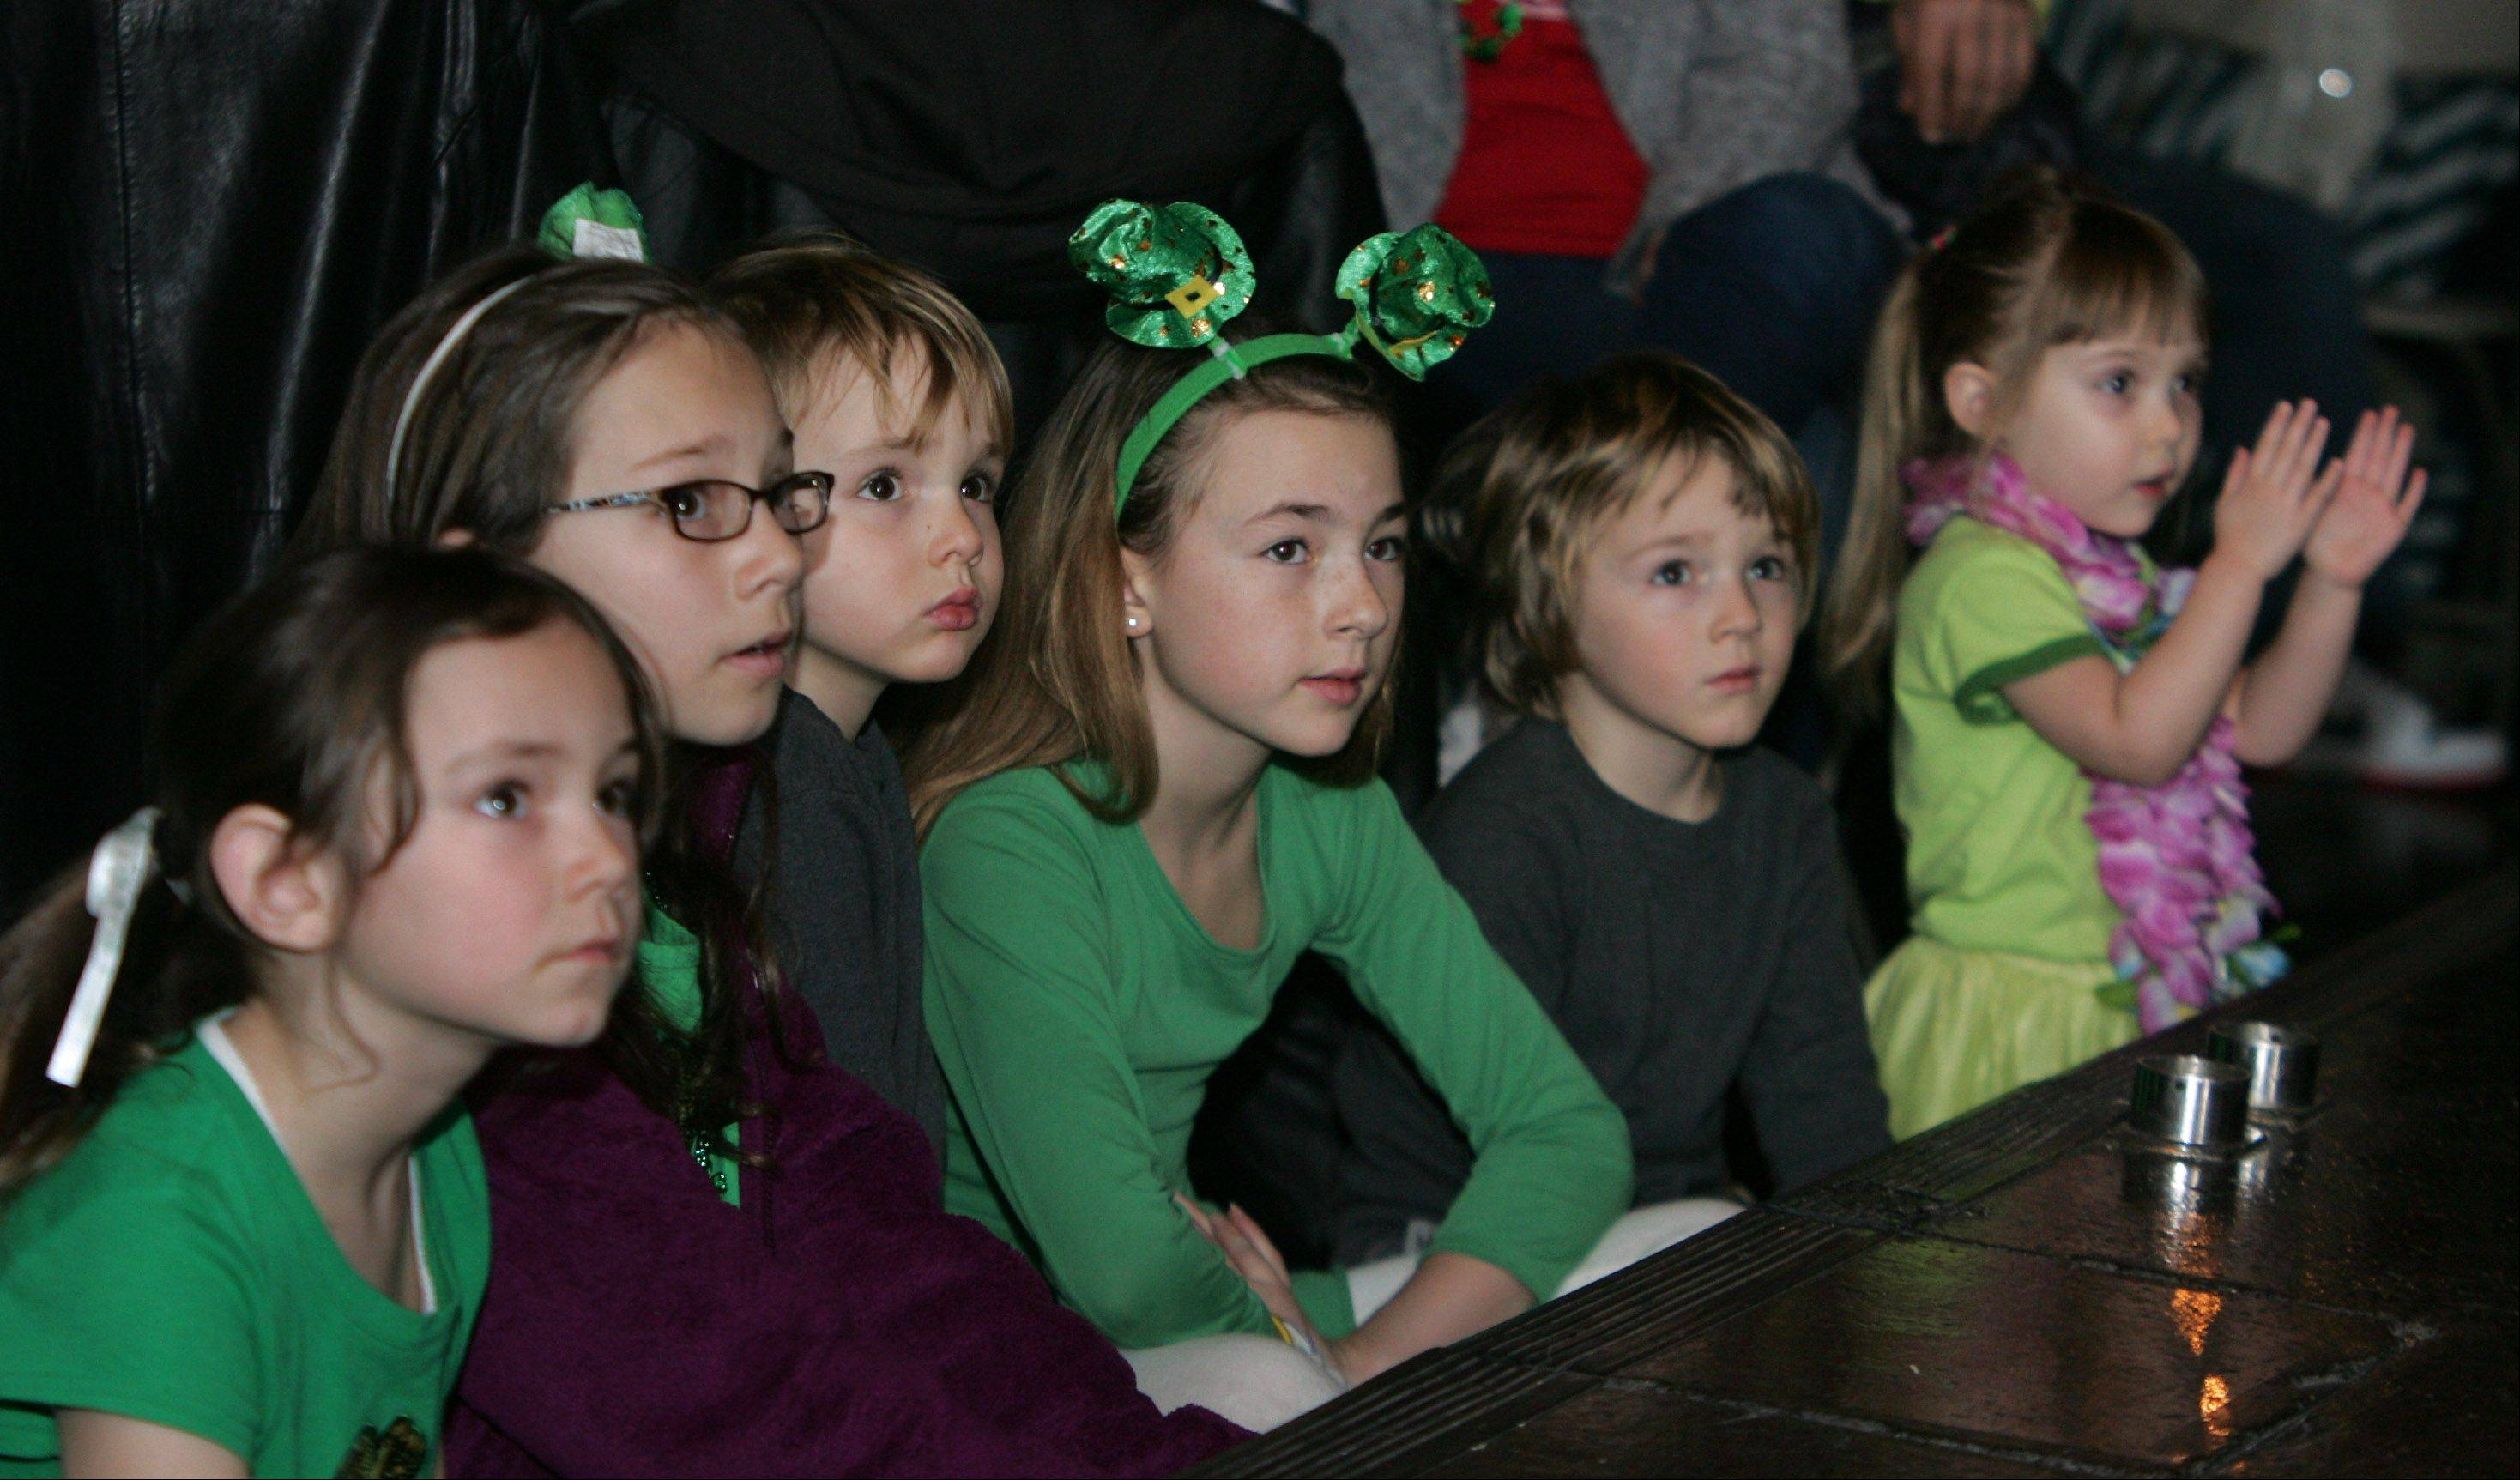 Children watch the Trinity Irish Dancers perform on St. Patrick's Day before a packed house Sunday at Mickey Finn's Brewery in Libertyville. The group has been performing the traditional Irish dance in the Chicago area for over 30 years.